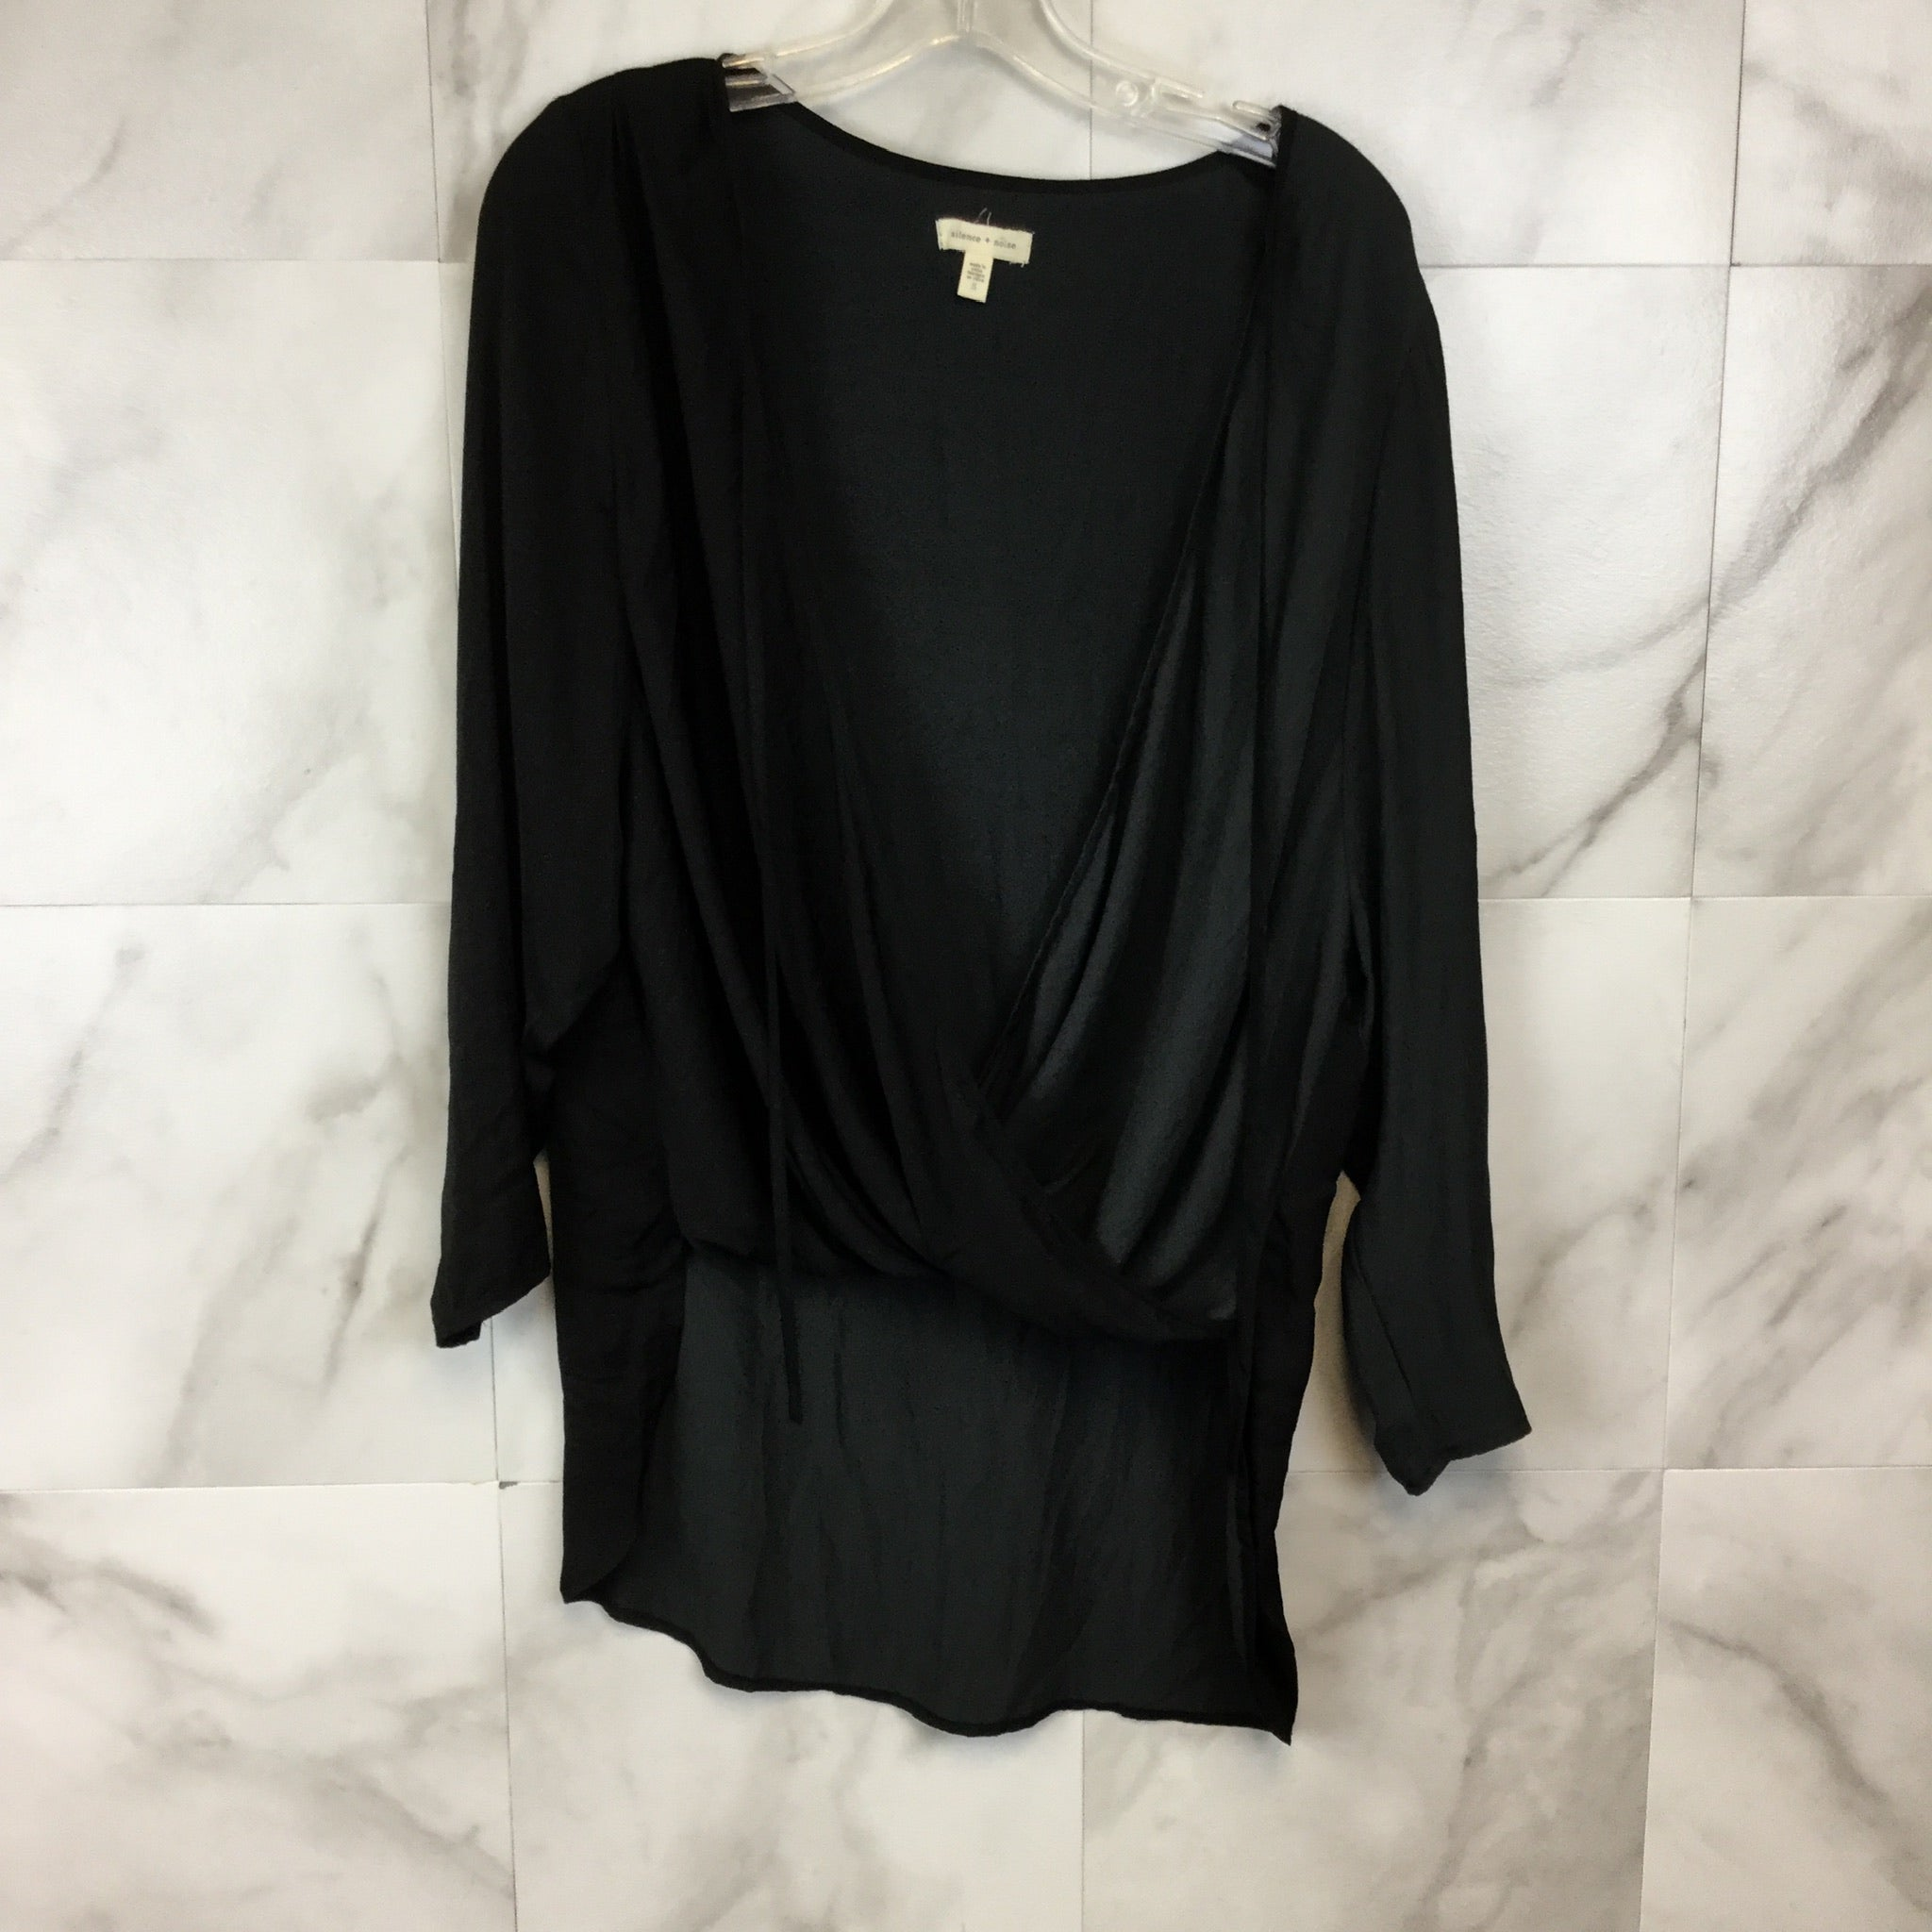 Urban Outfitters Silence + Noise Olivia Surplice Top - Size S